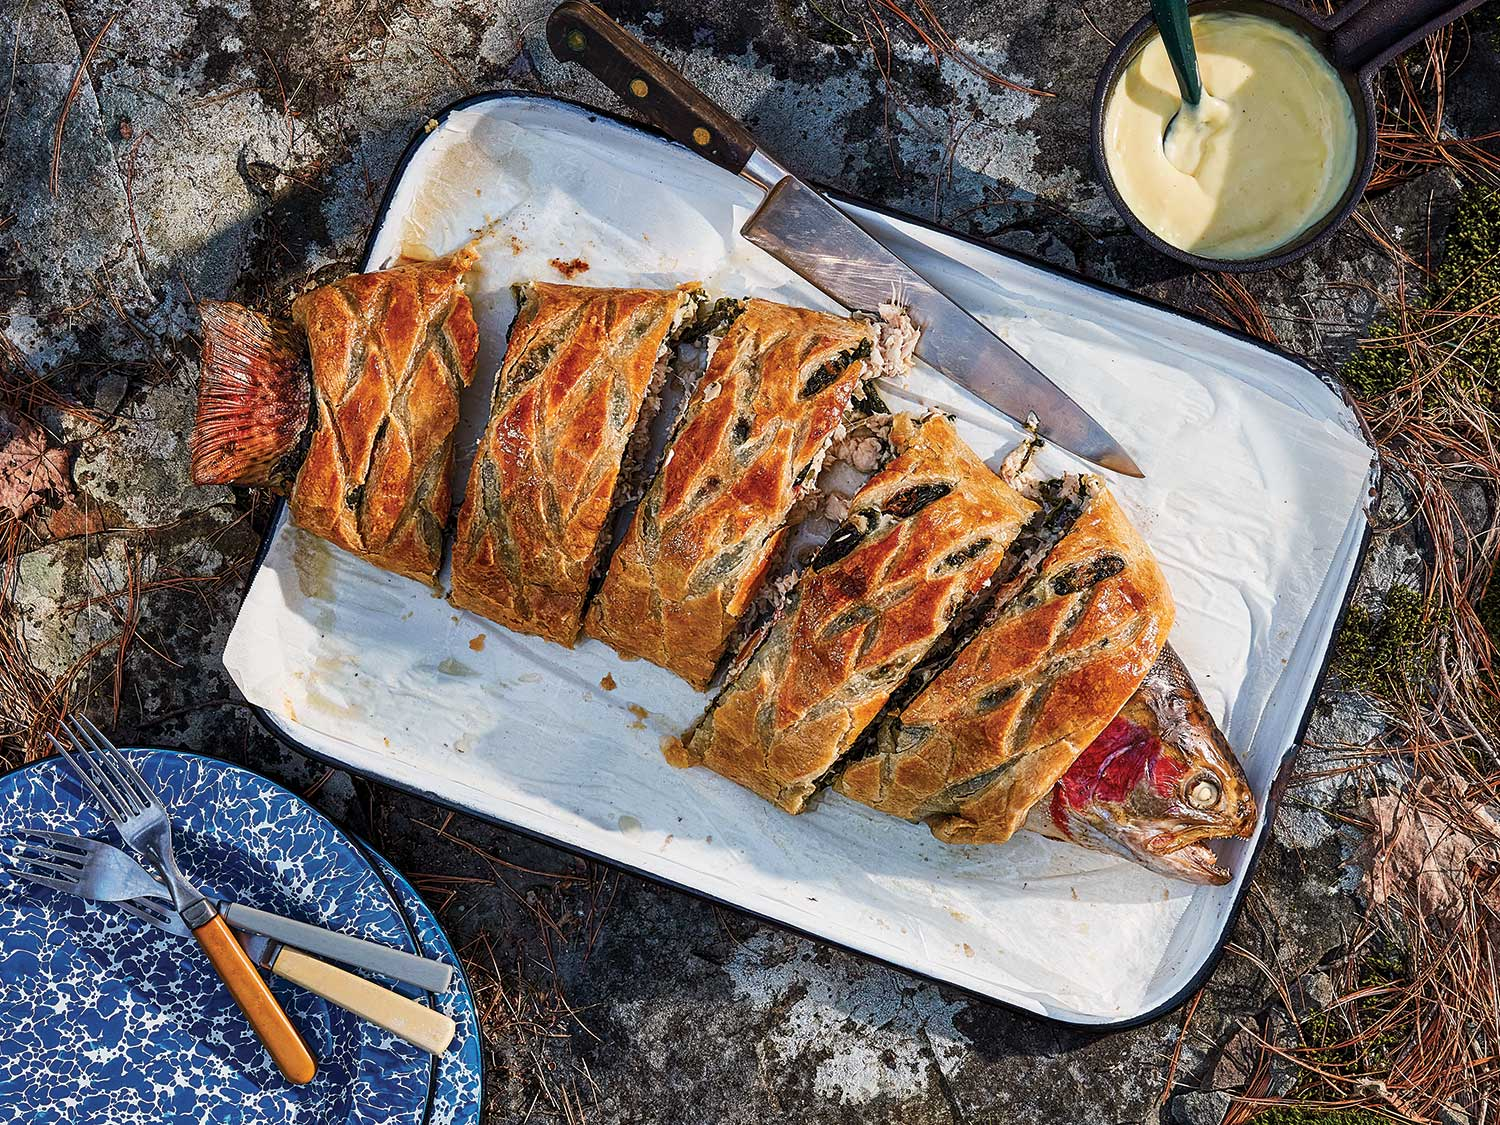 A steelhead trout wellington with trout wrapped in pastry dough.